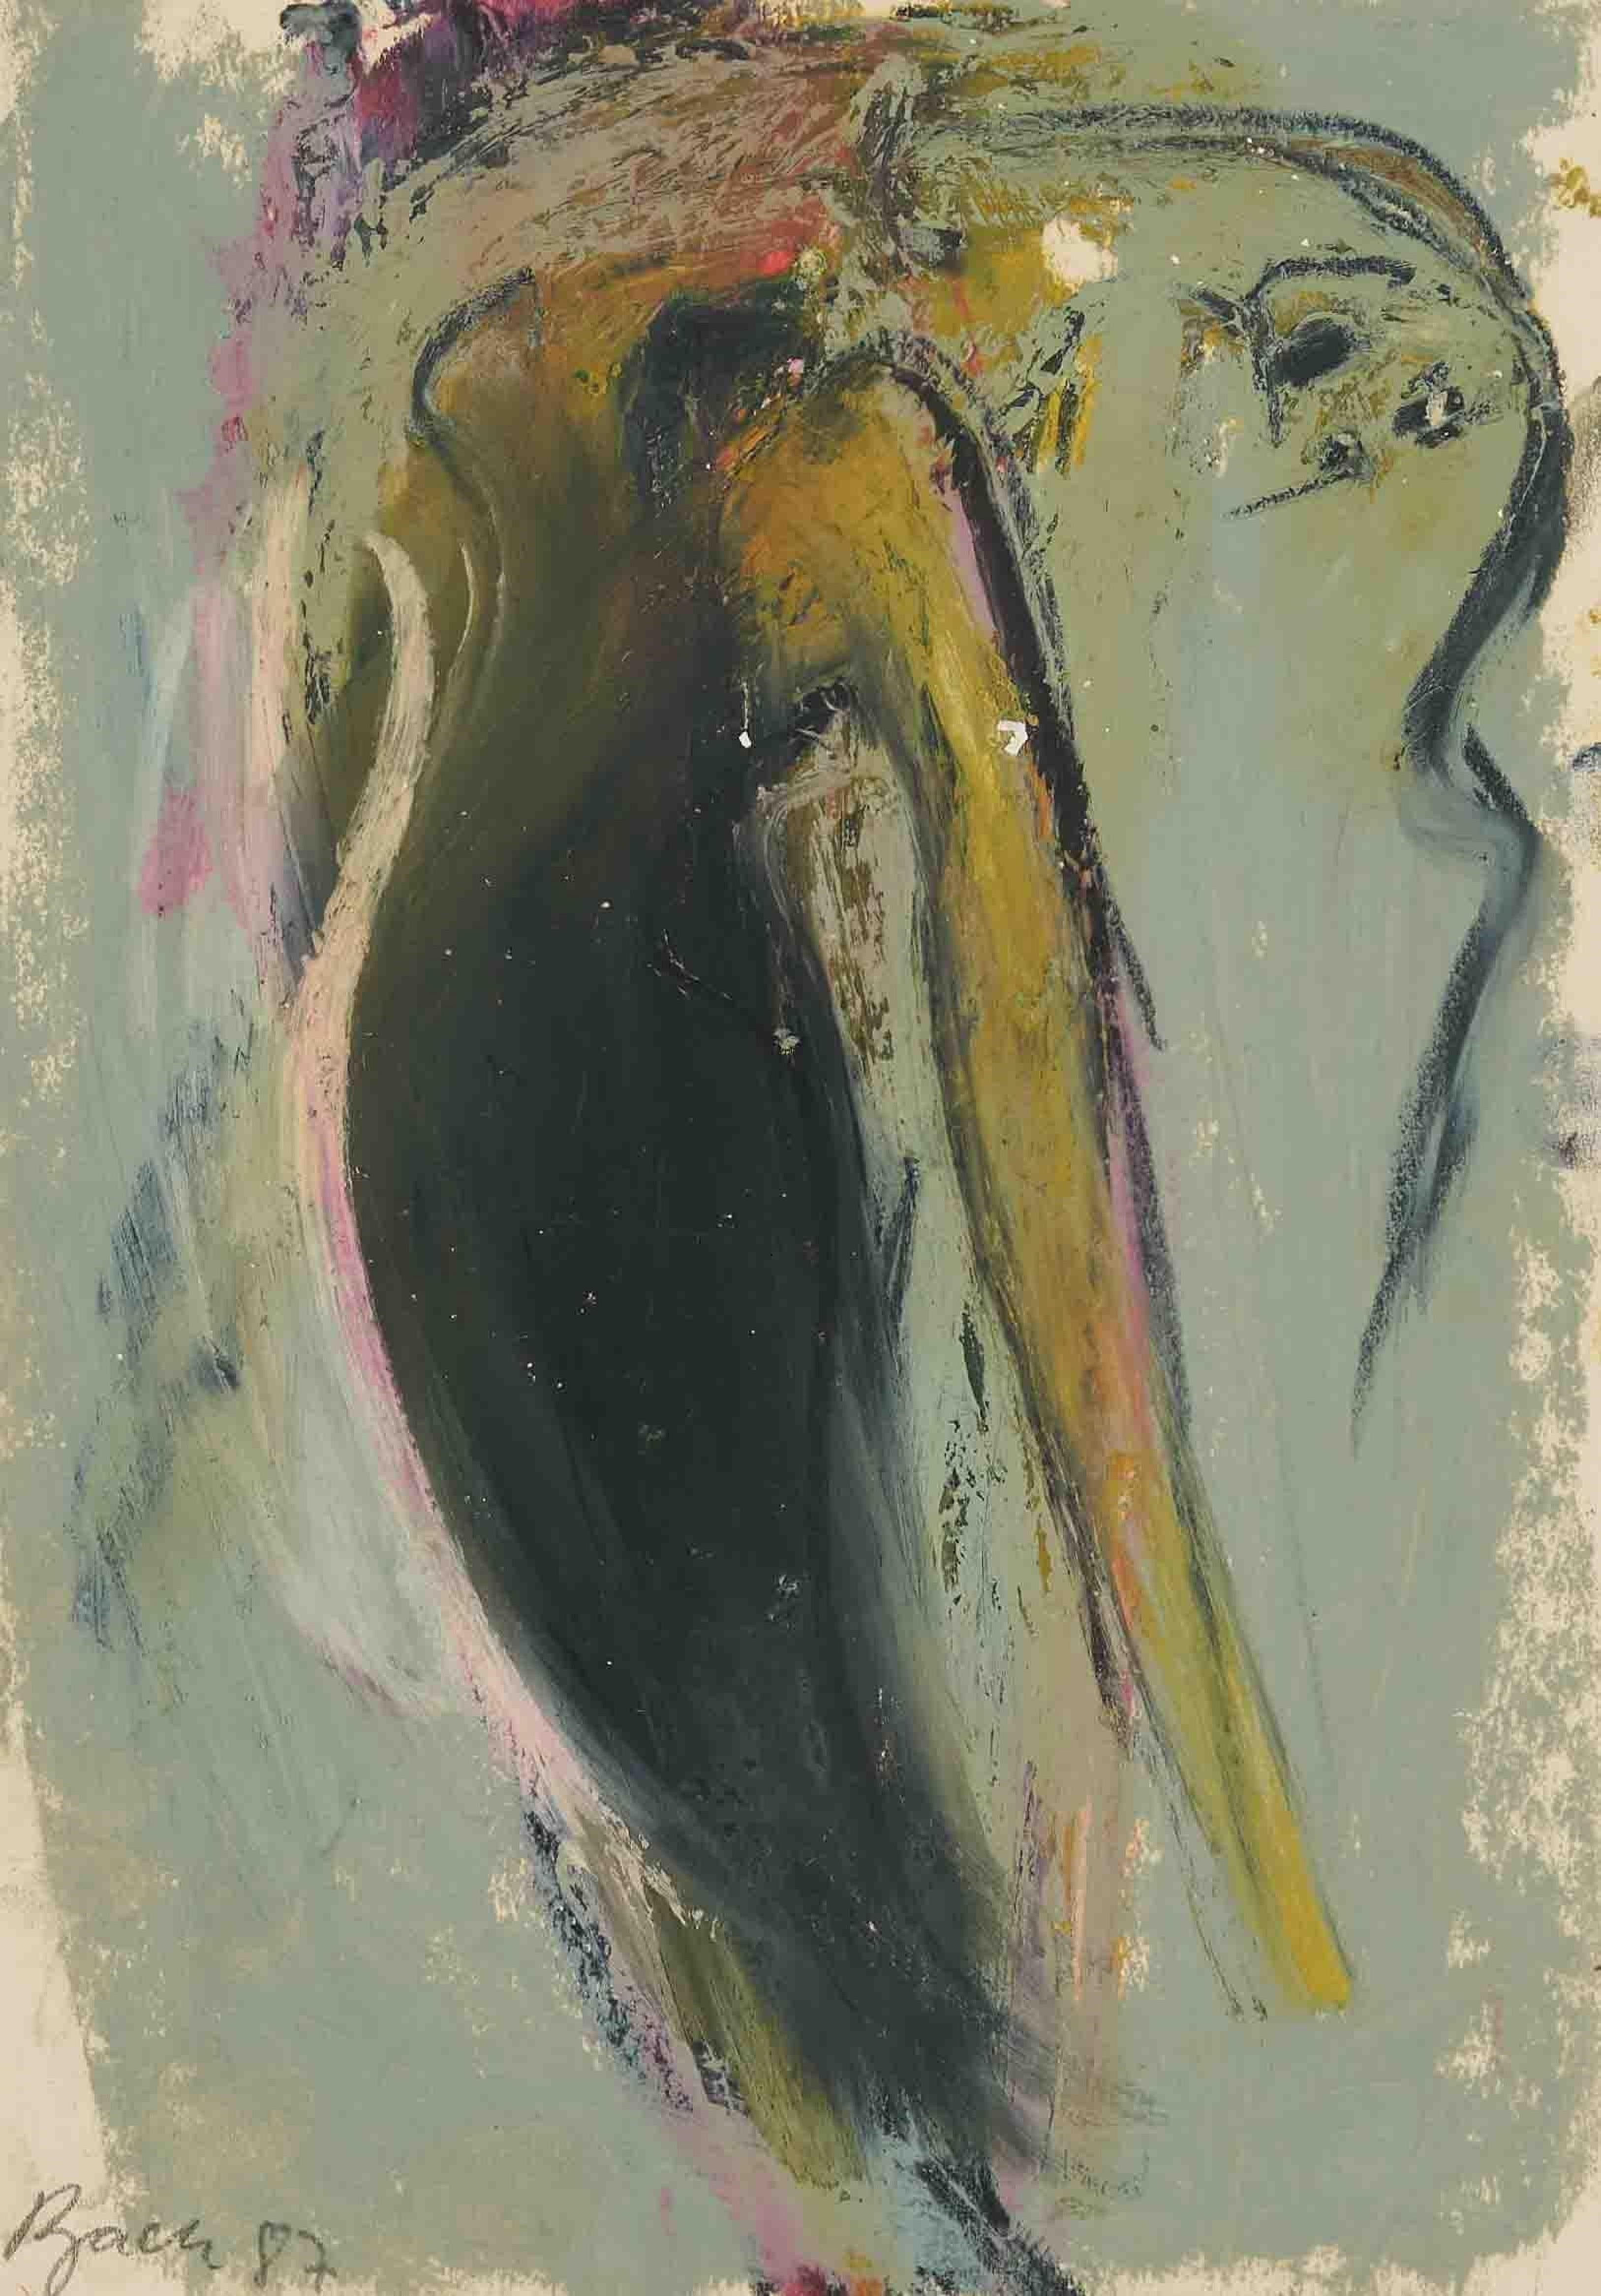 German Junge Wilde Abstract Gouache Painting Hand Signed, Neo Expressionist Bach